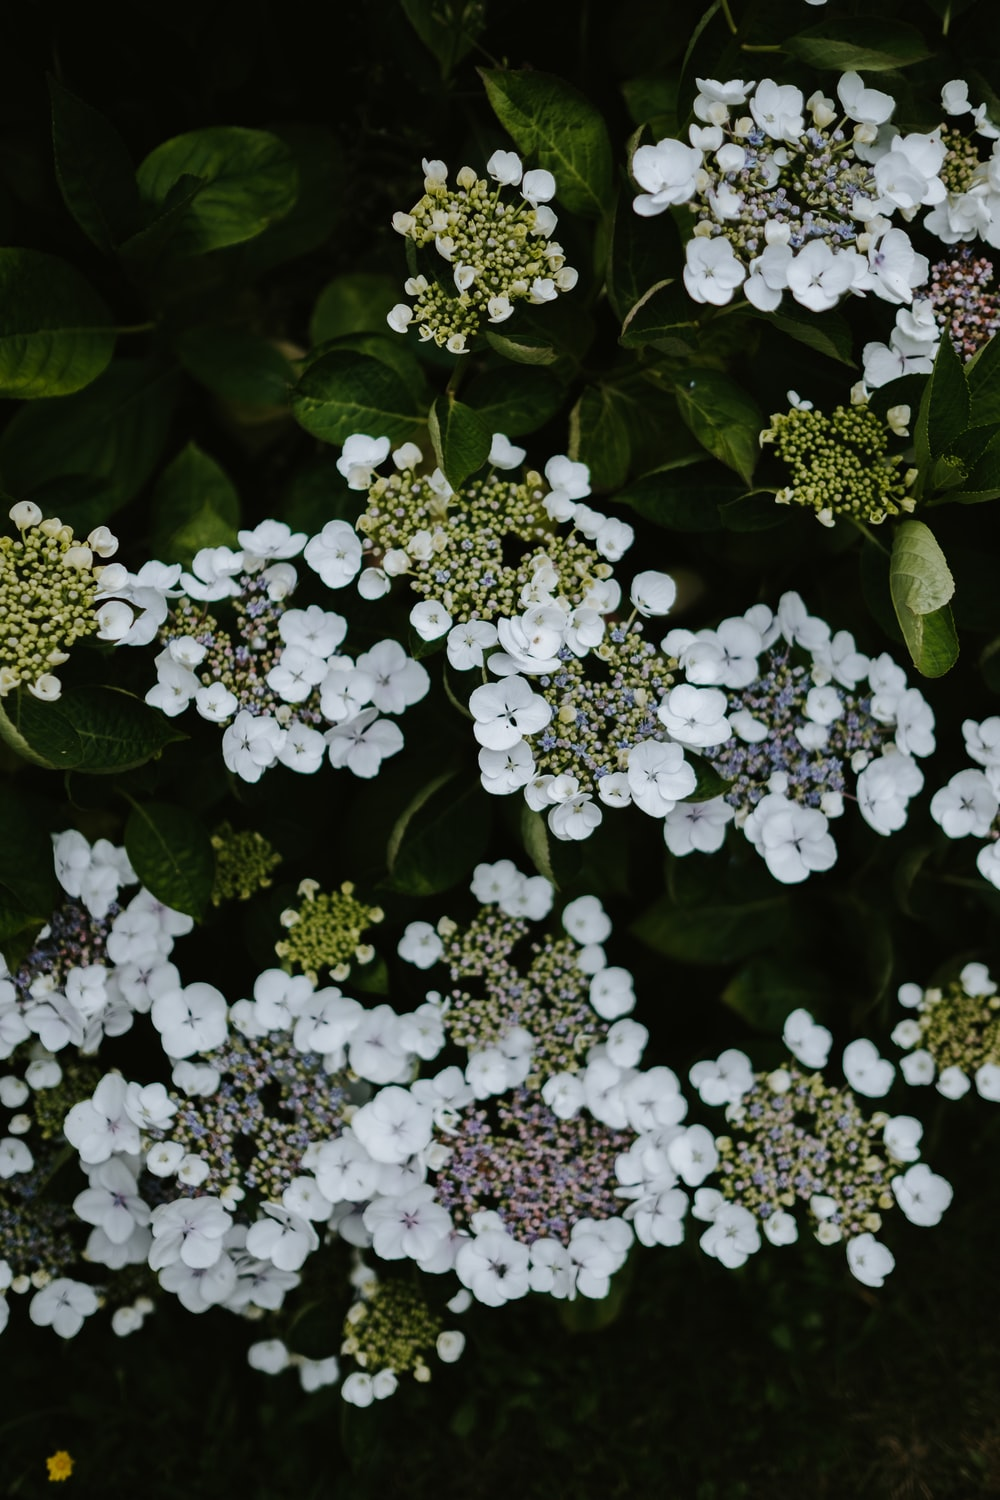 white-petaled flowers